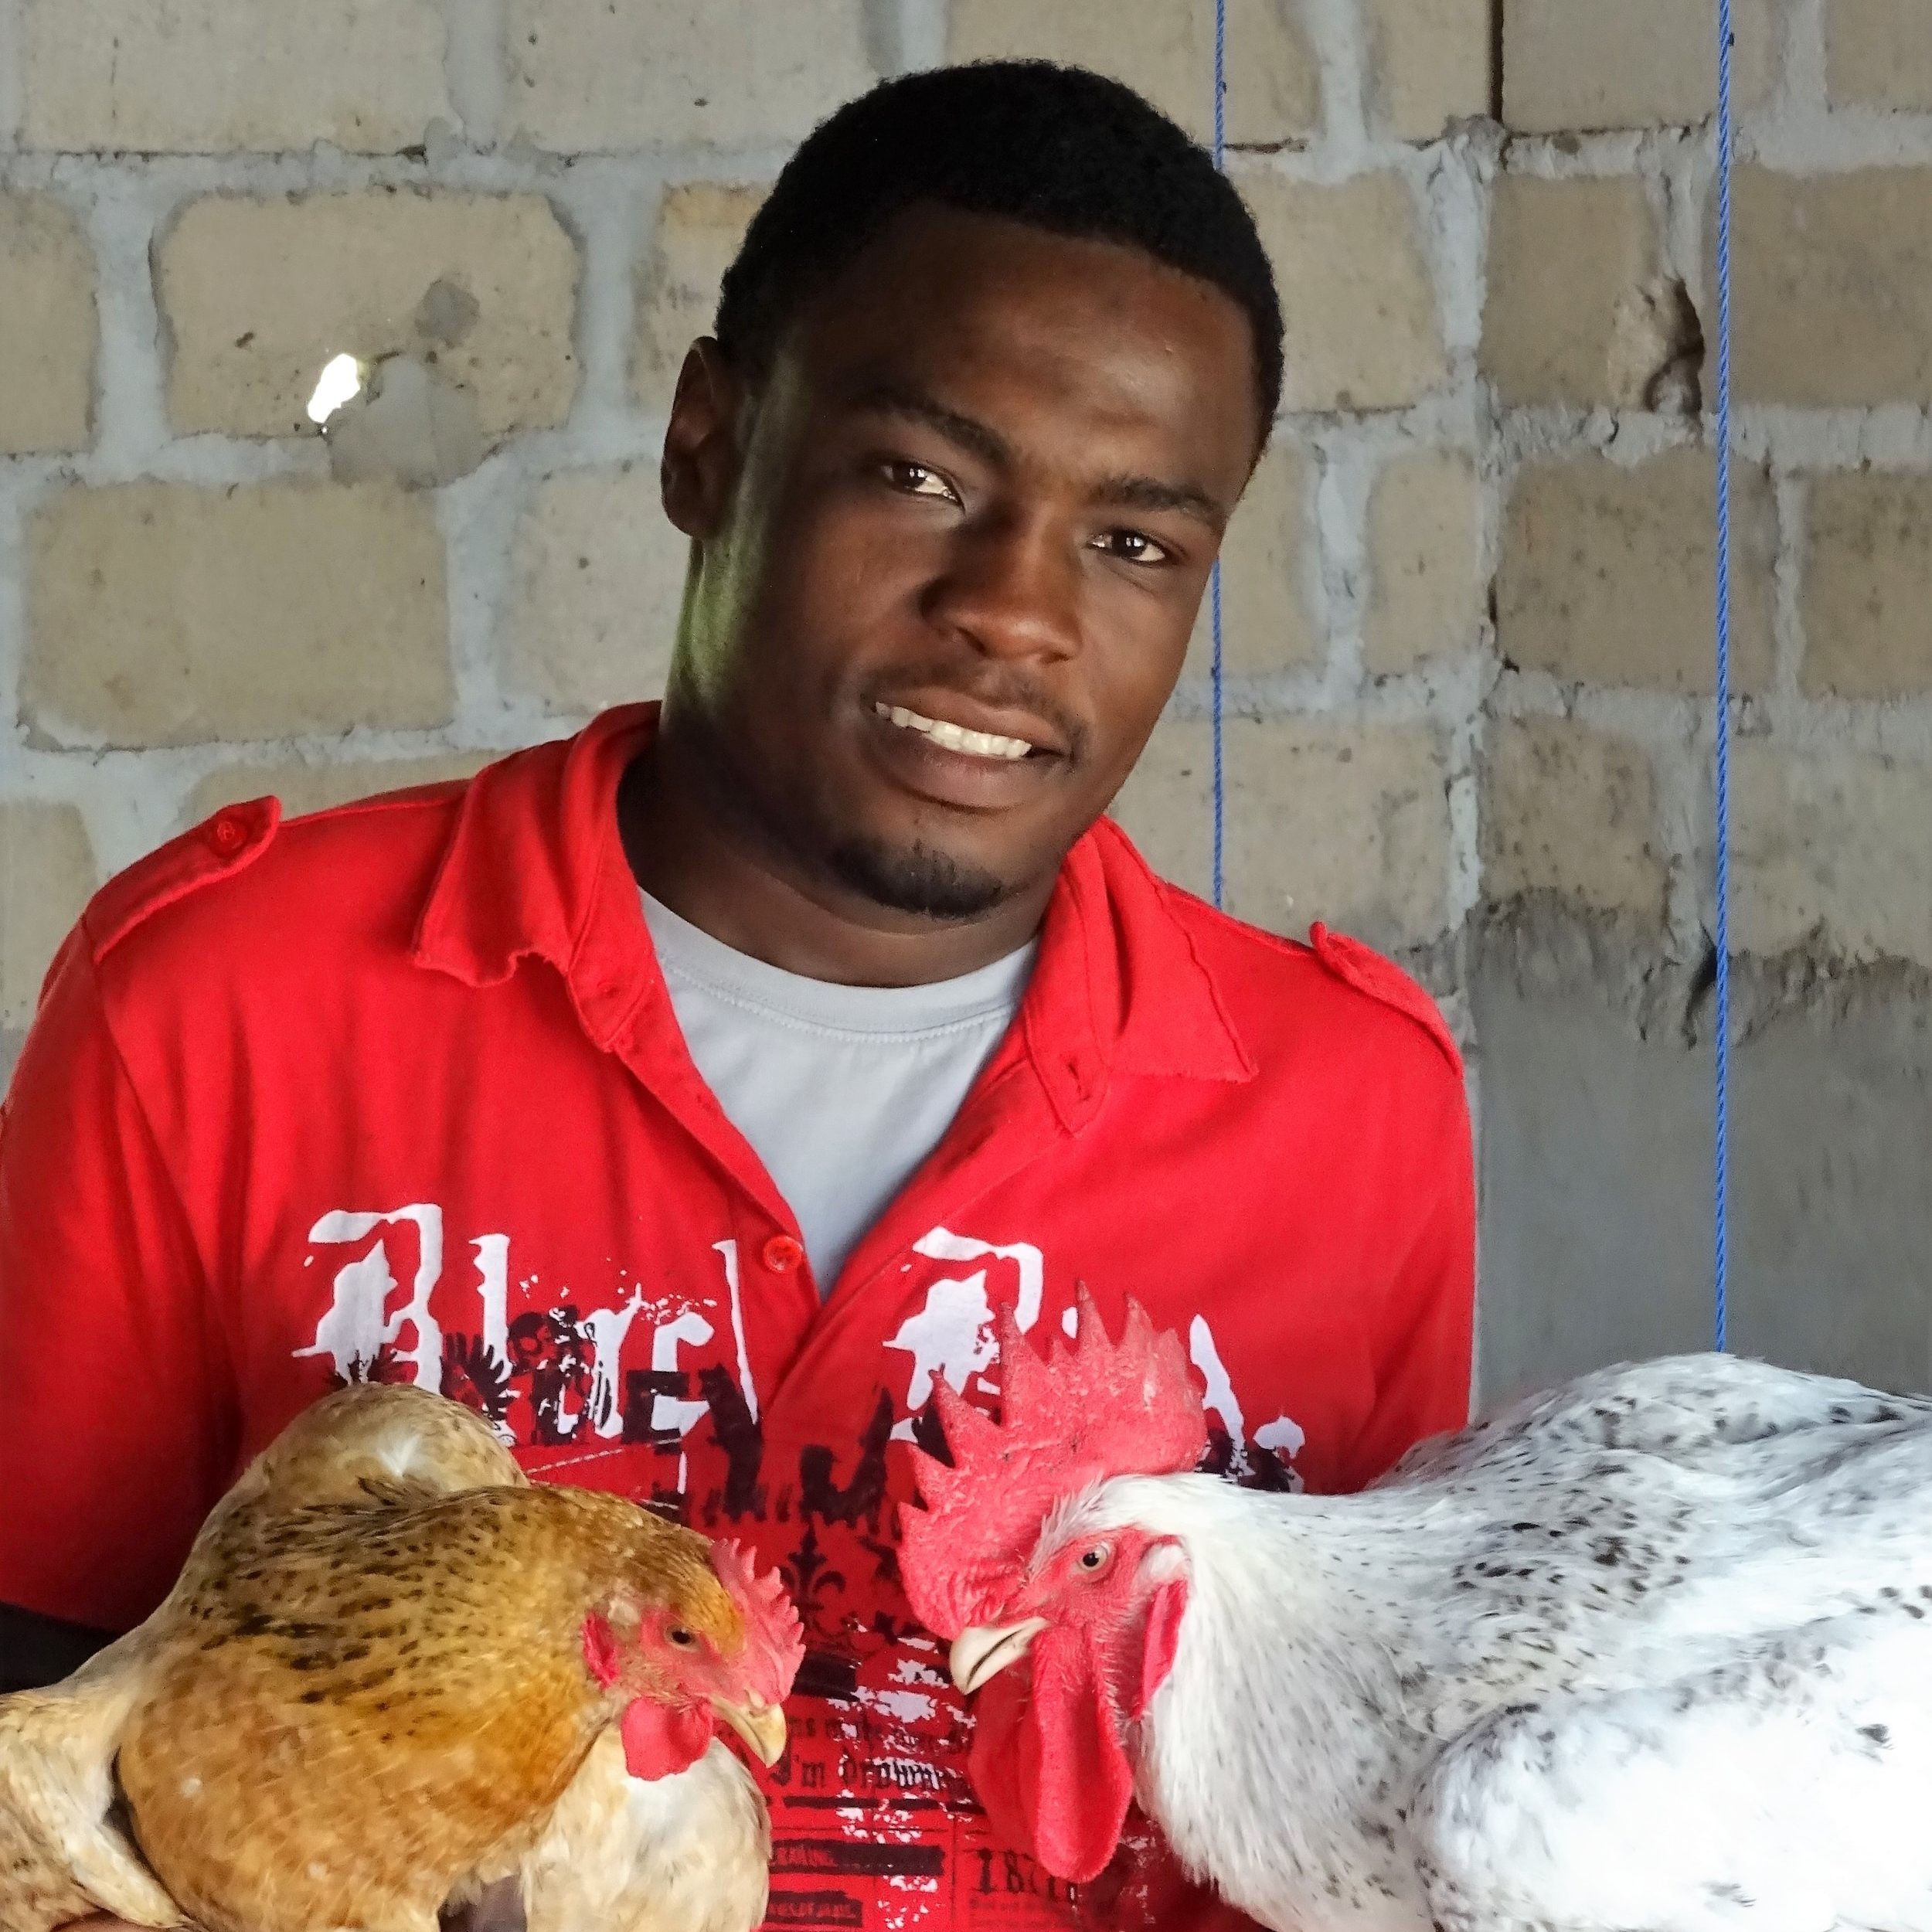 Chicken 4 Life Business Manager. Now enjoys teaching and sharing knowledge, rather than being a policeman